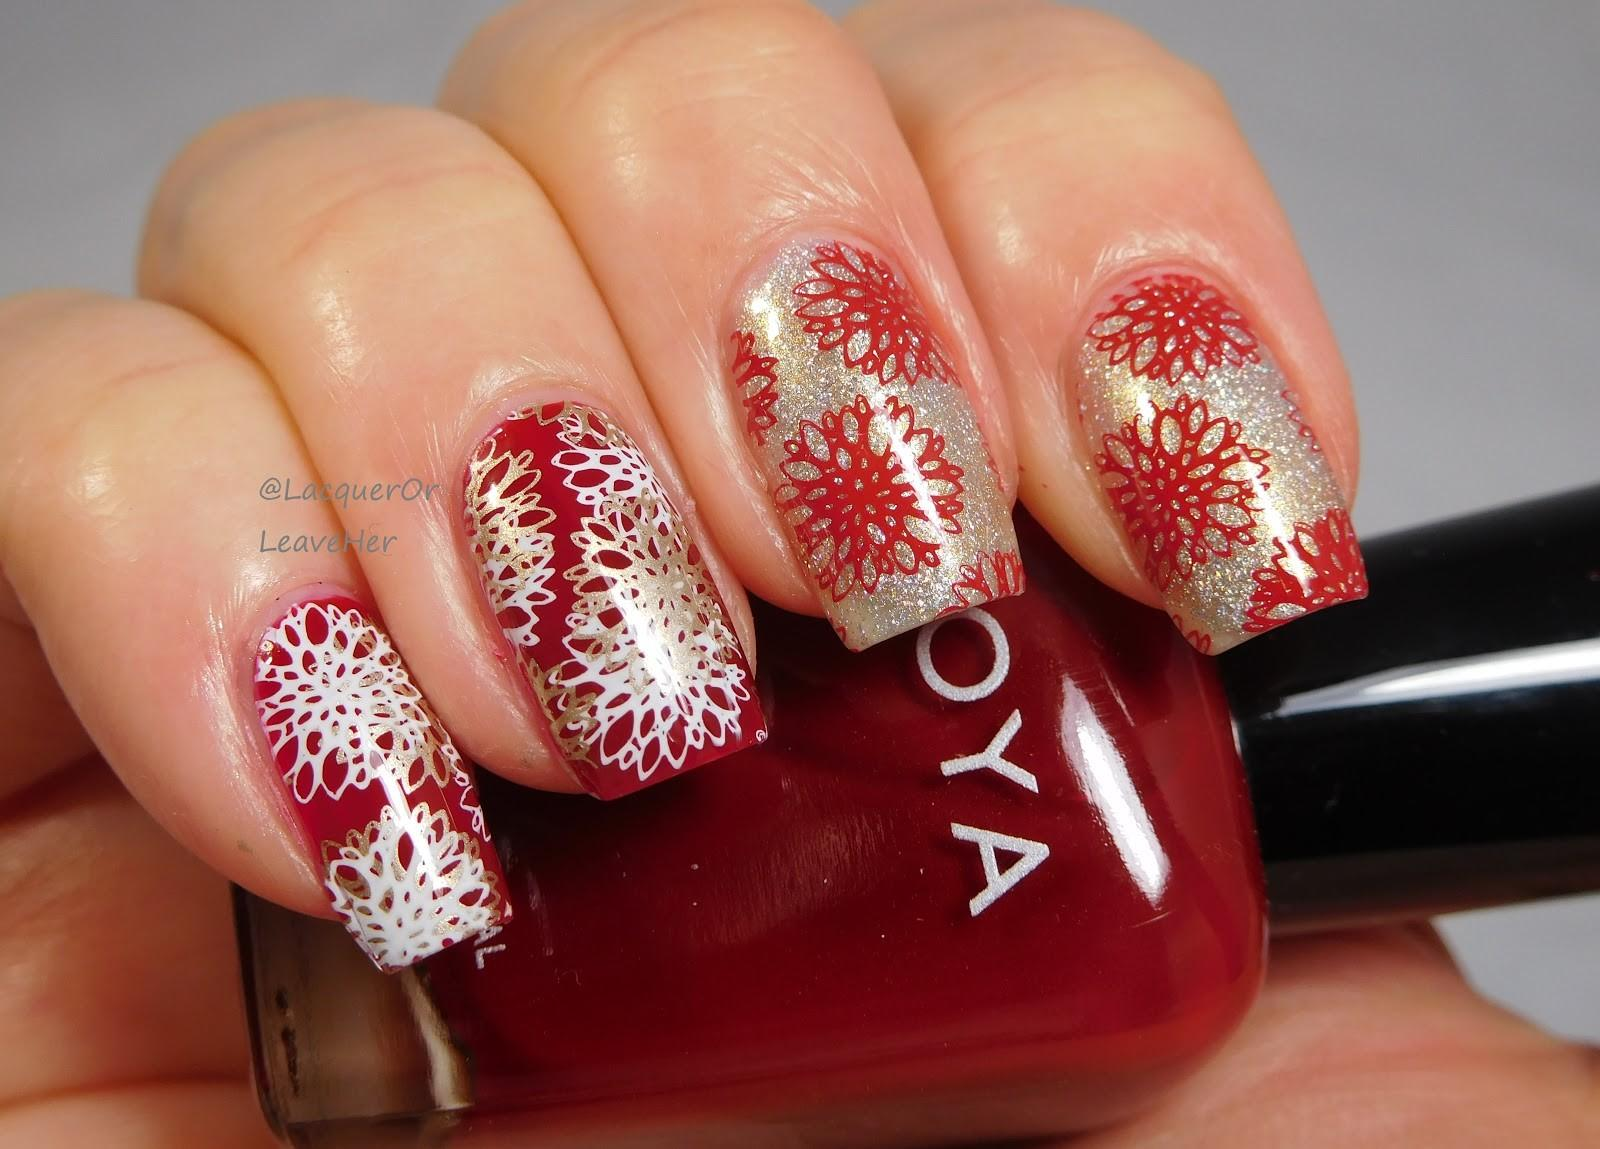 Lacquer Leave Her Notd Tutorial Holiday Flowers